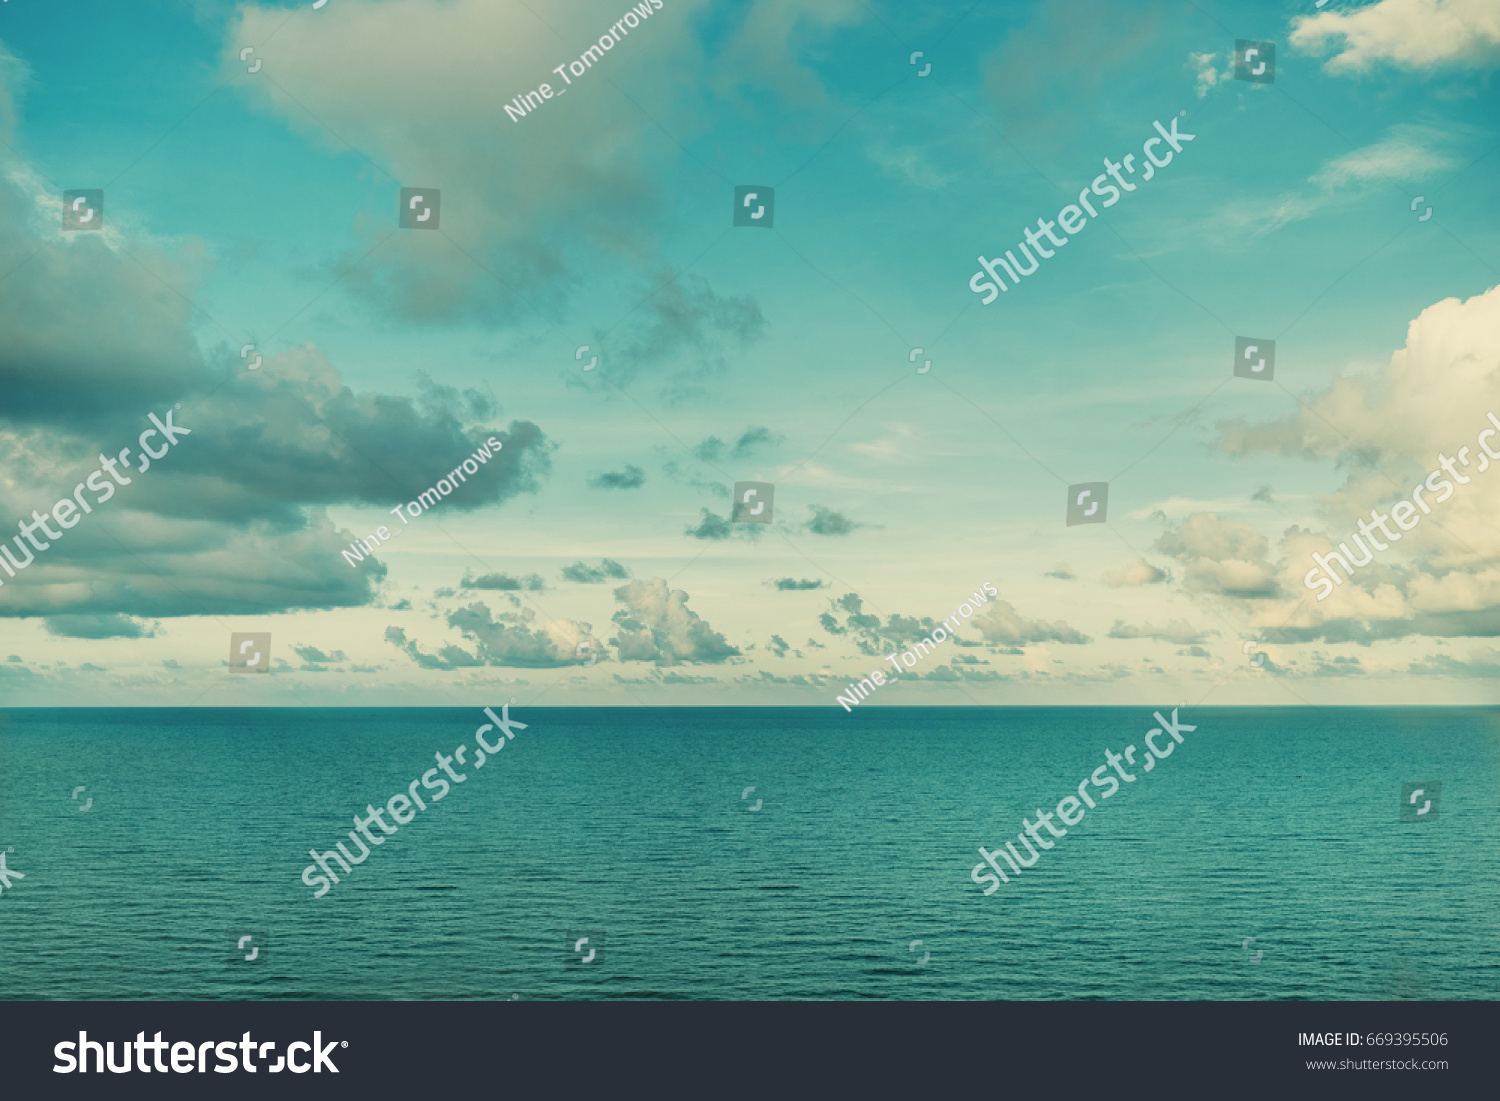 Majestic Beautiful White Clouds And The Calm Azure Sea Background Wallpaper Sunny Summer Day